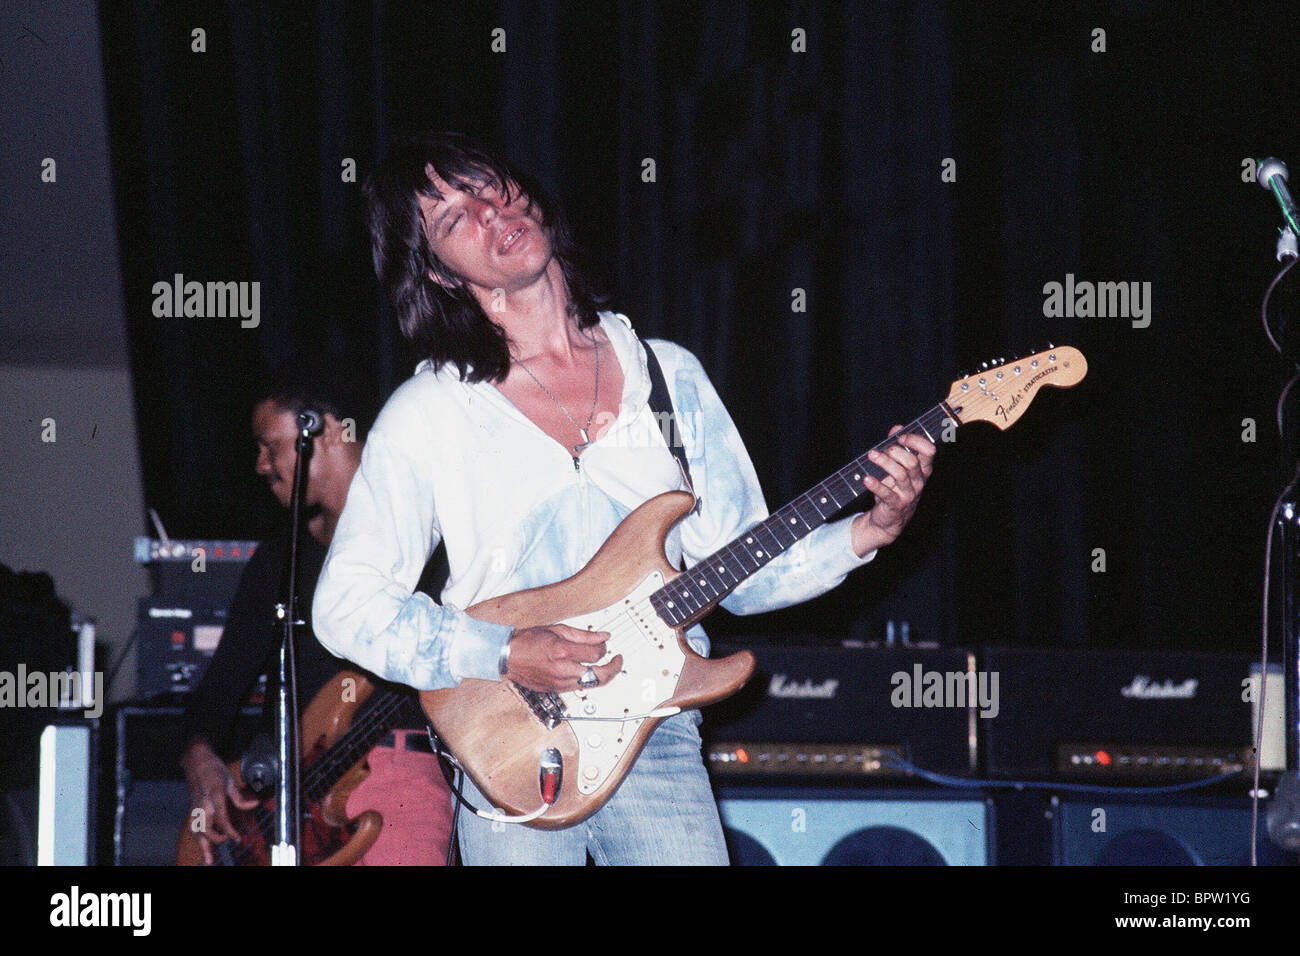 hight resolution of jeff beck musician 1976 stock image